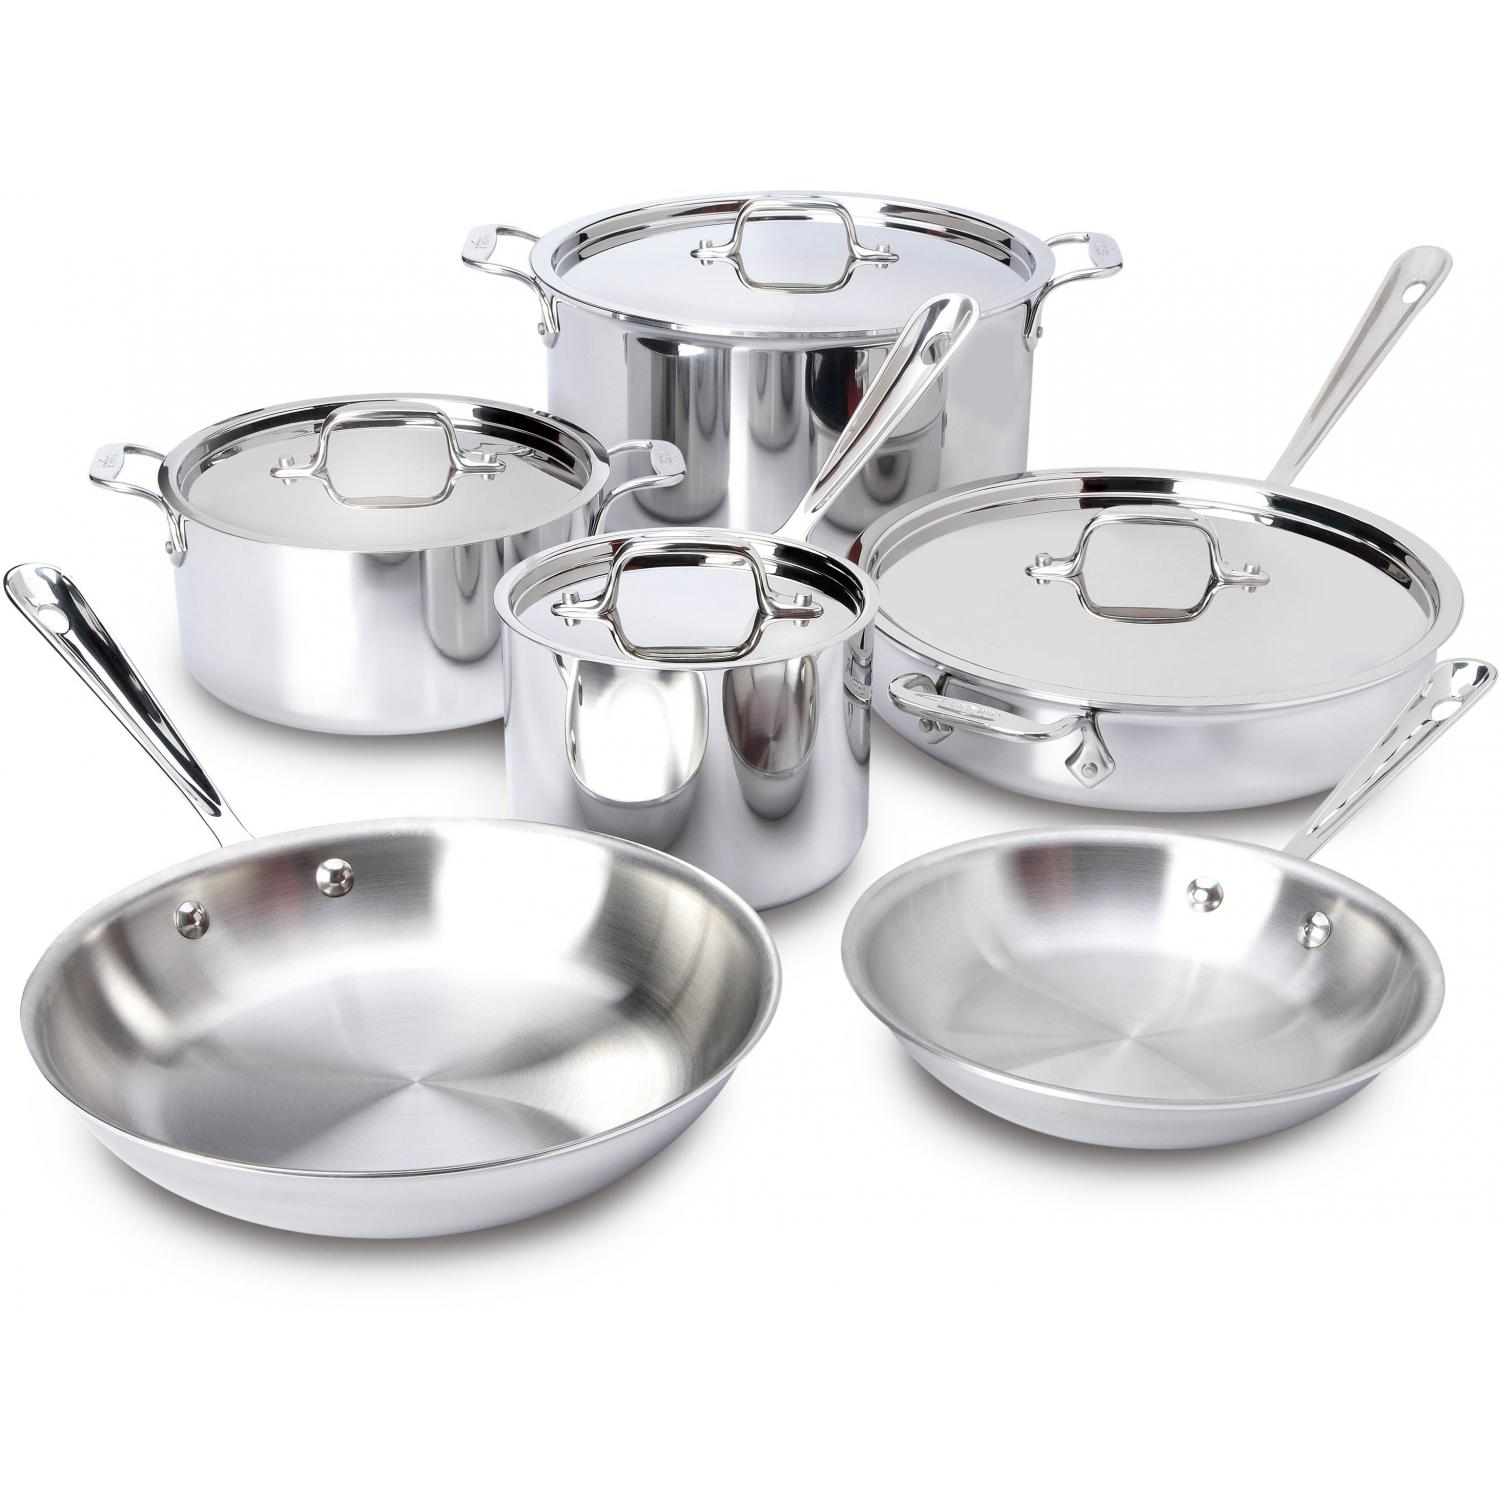 Picture of All-Clad Stainless 10-Piece Cookware Set